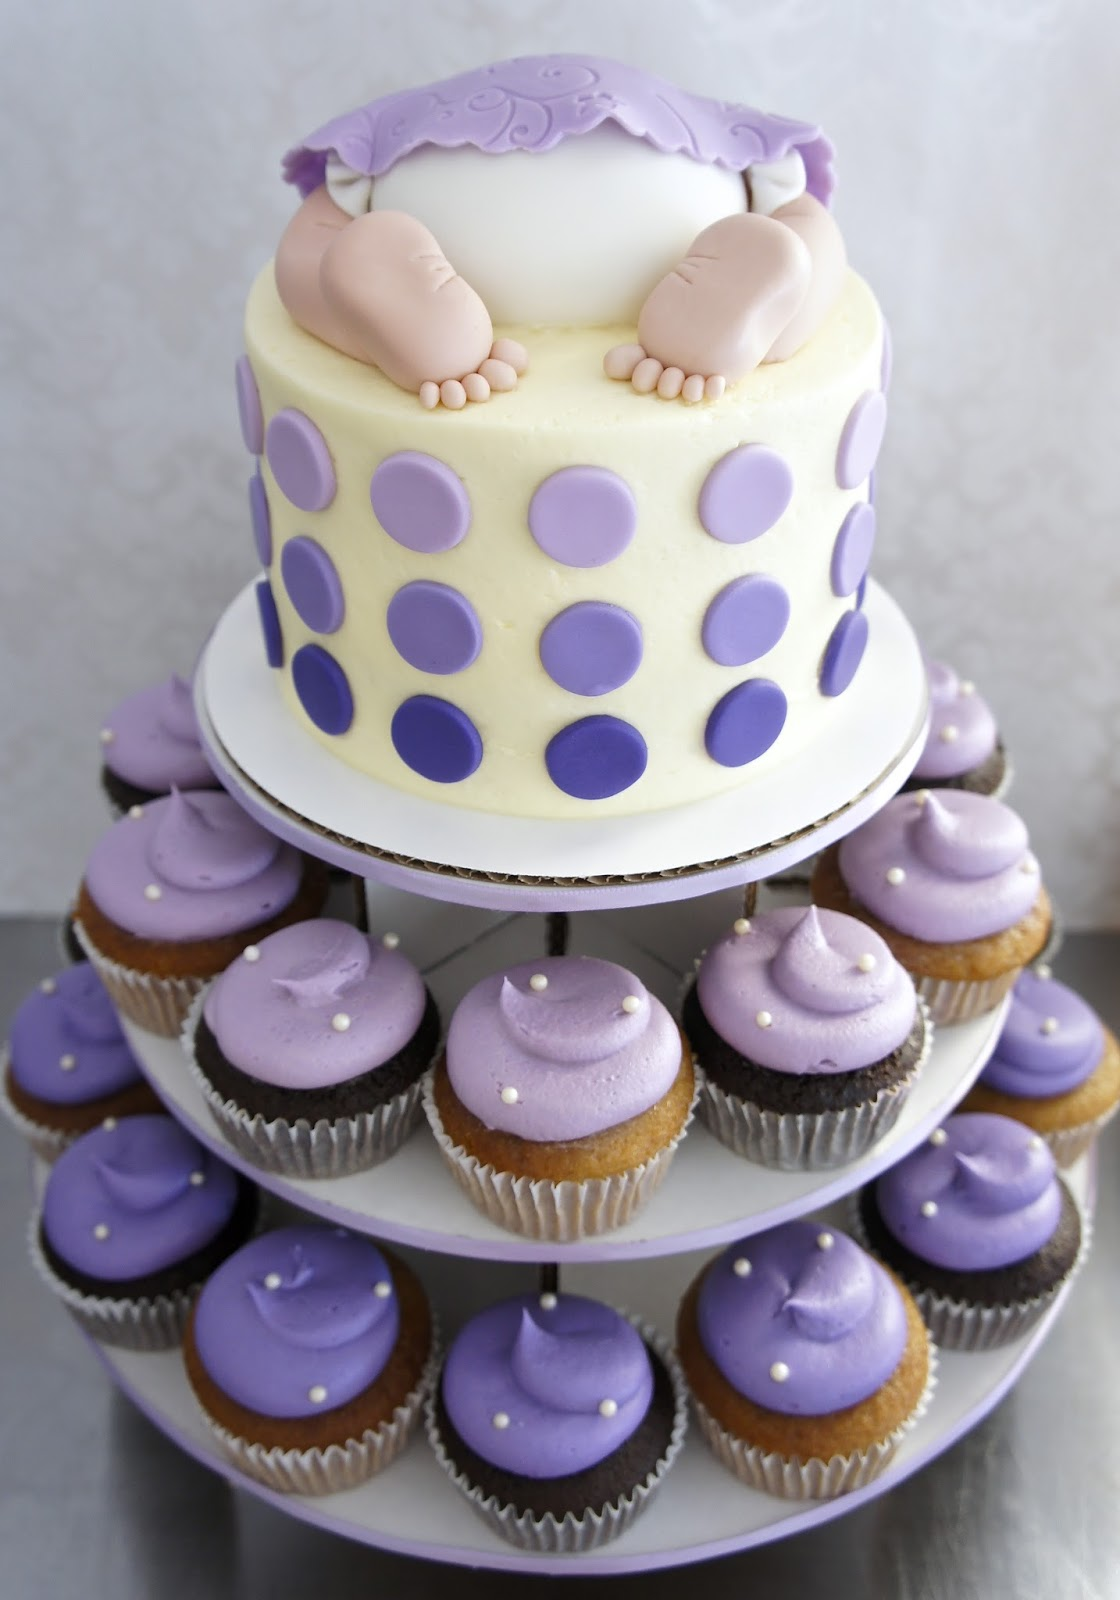 Baby Shower Cakes With Cupcakes ~ Baby mania at half baked co